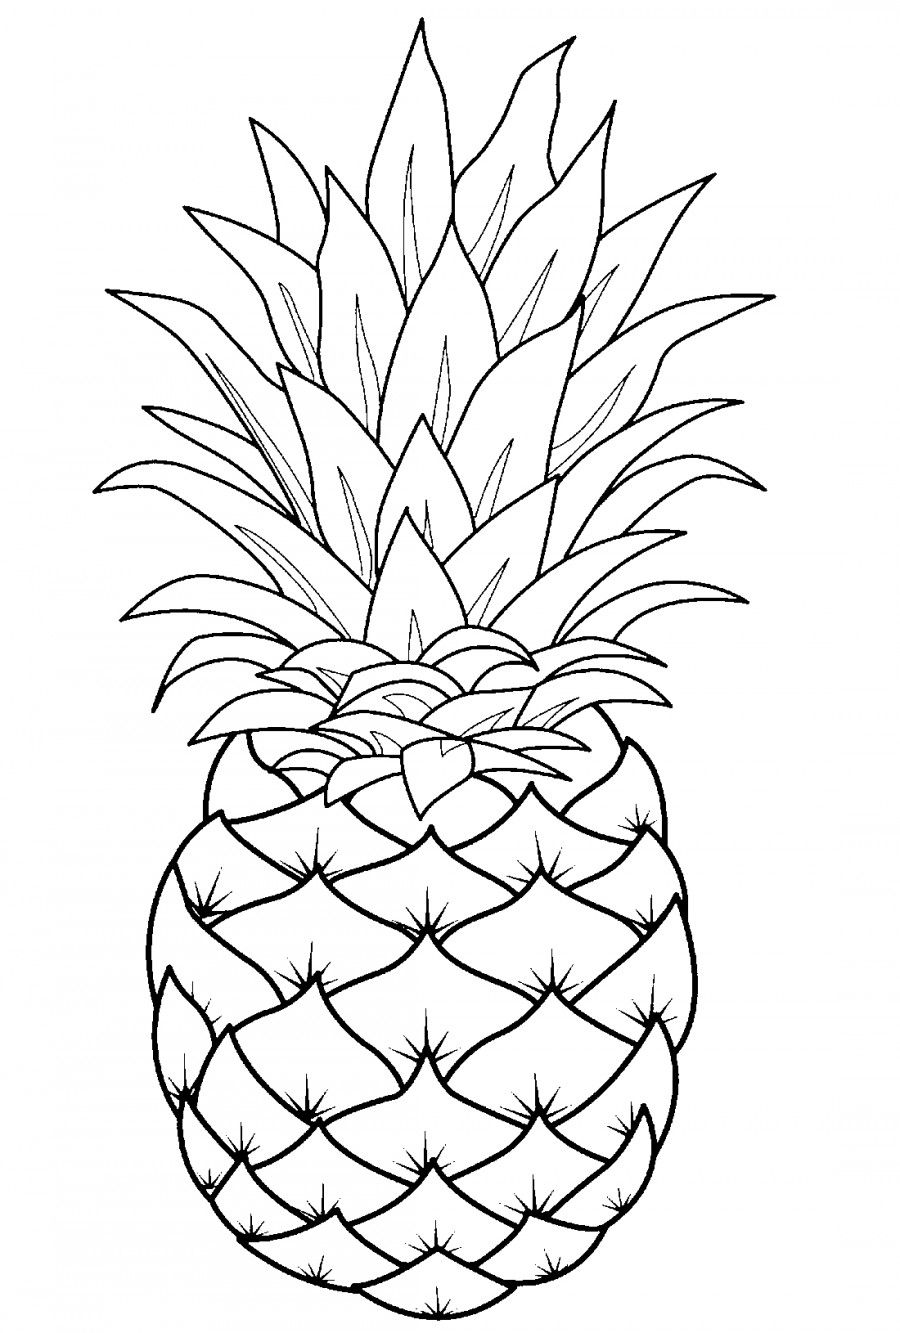 Pineapple Template Line Art Drawings Fruit Coloring Pages